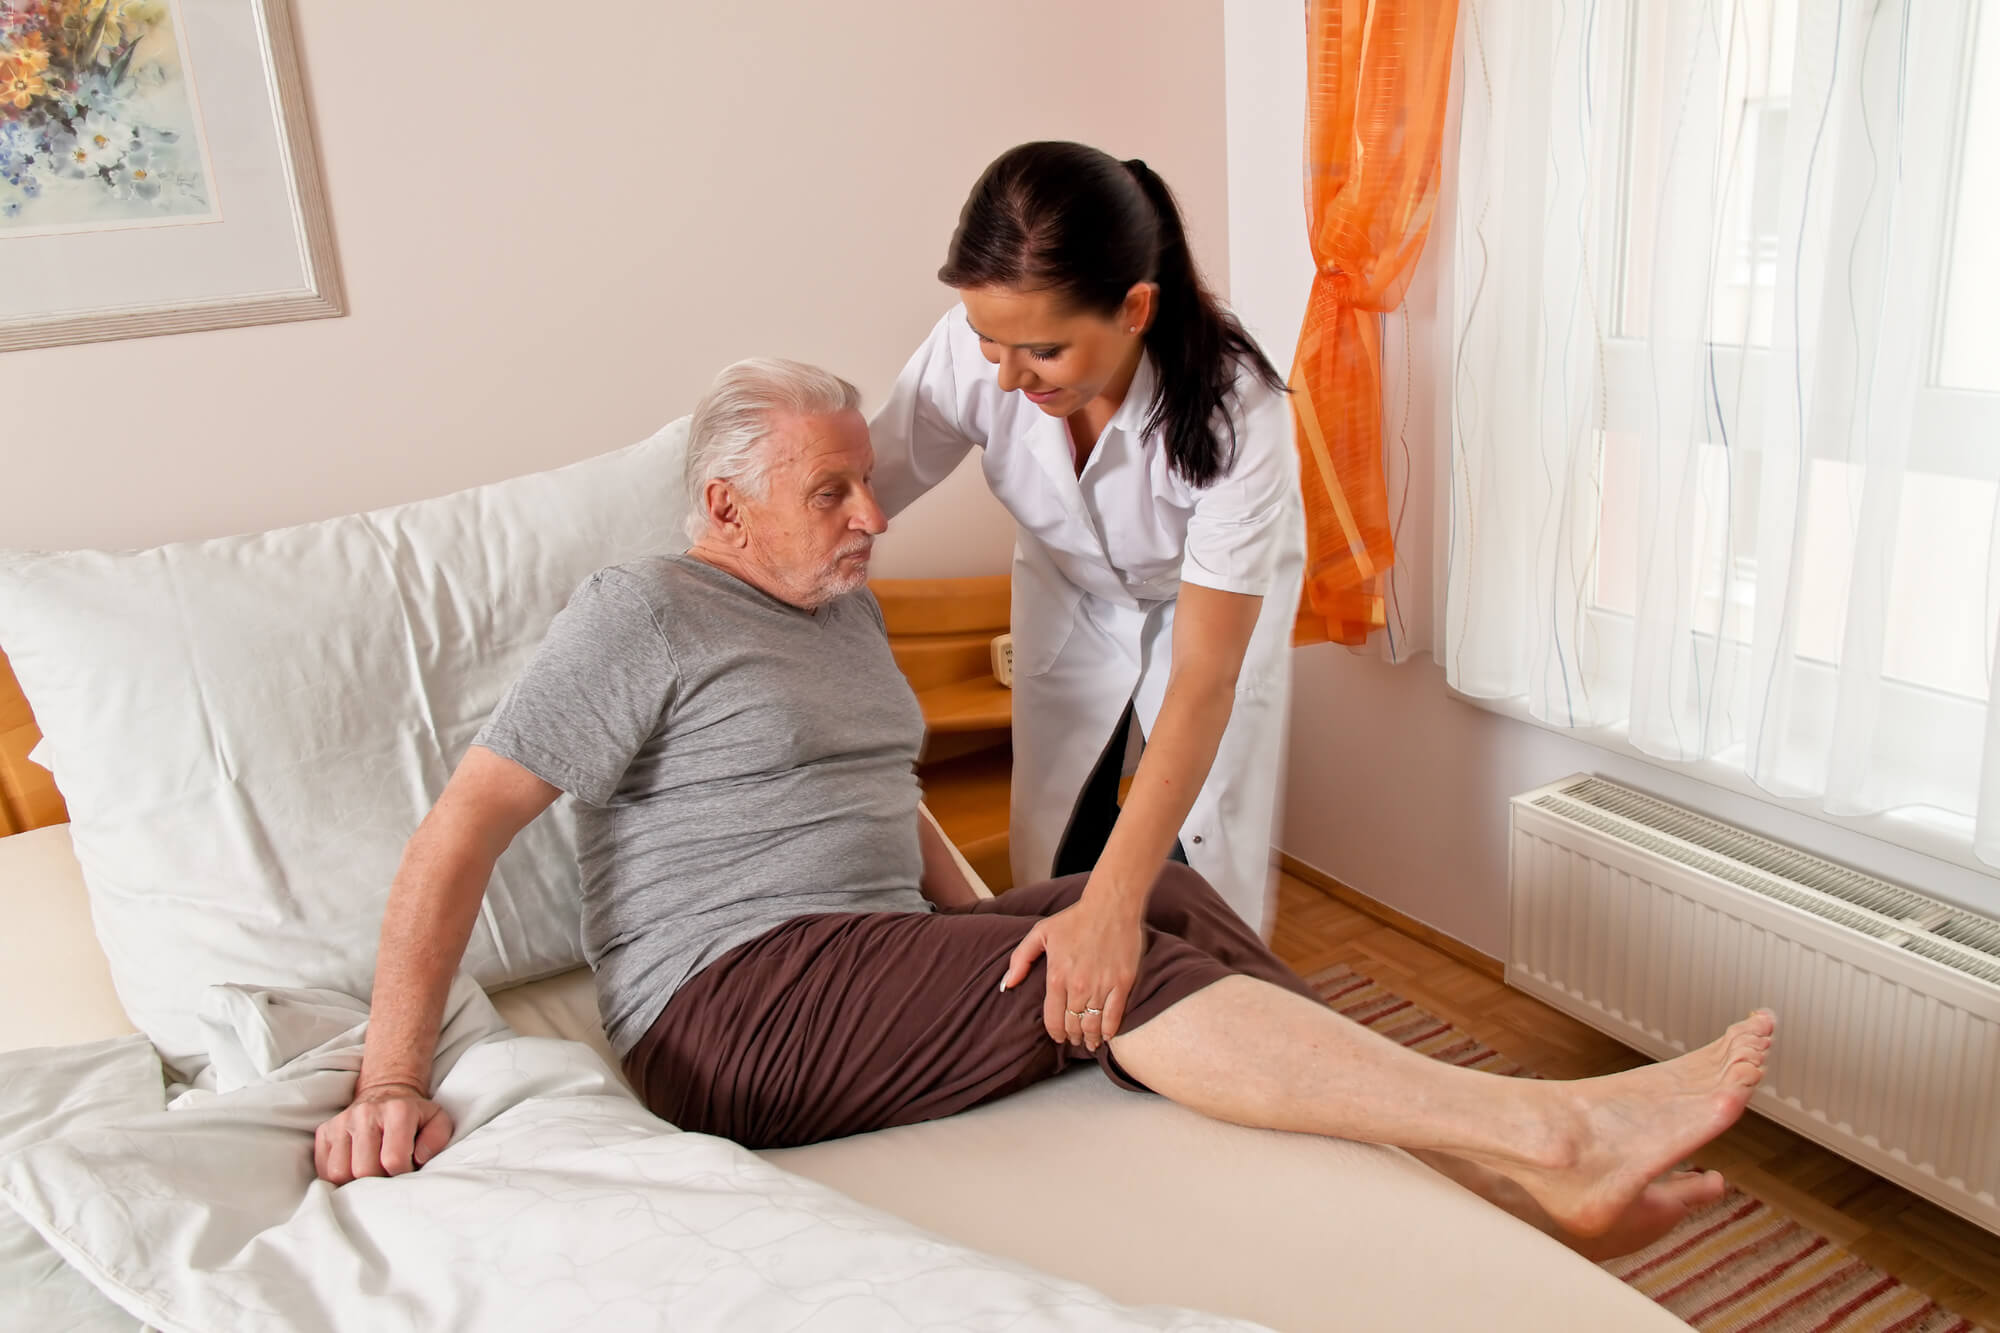 Nurse offering private home care in NYC.